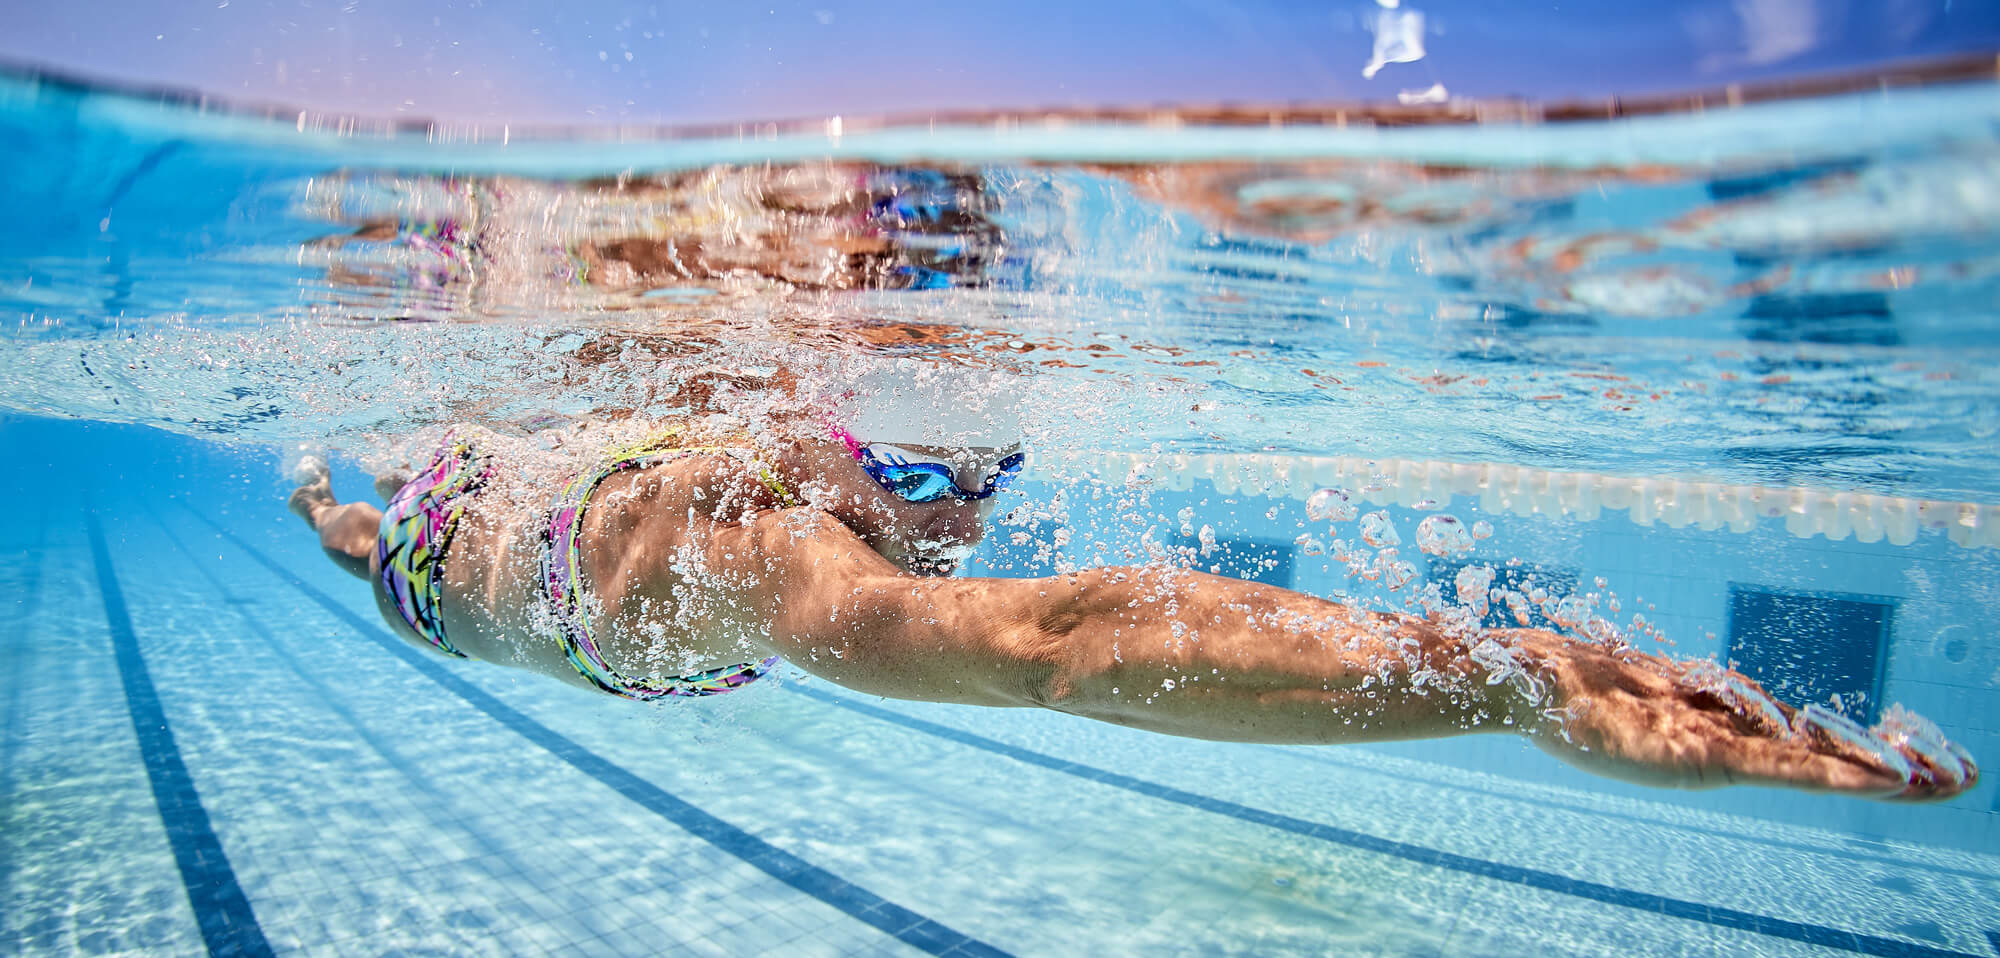 Anja Beranek - Triathletin - Swimming